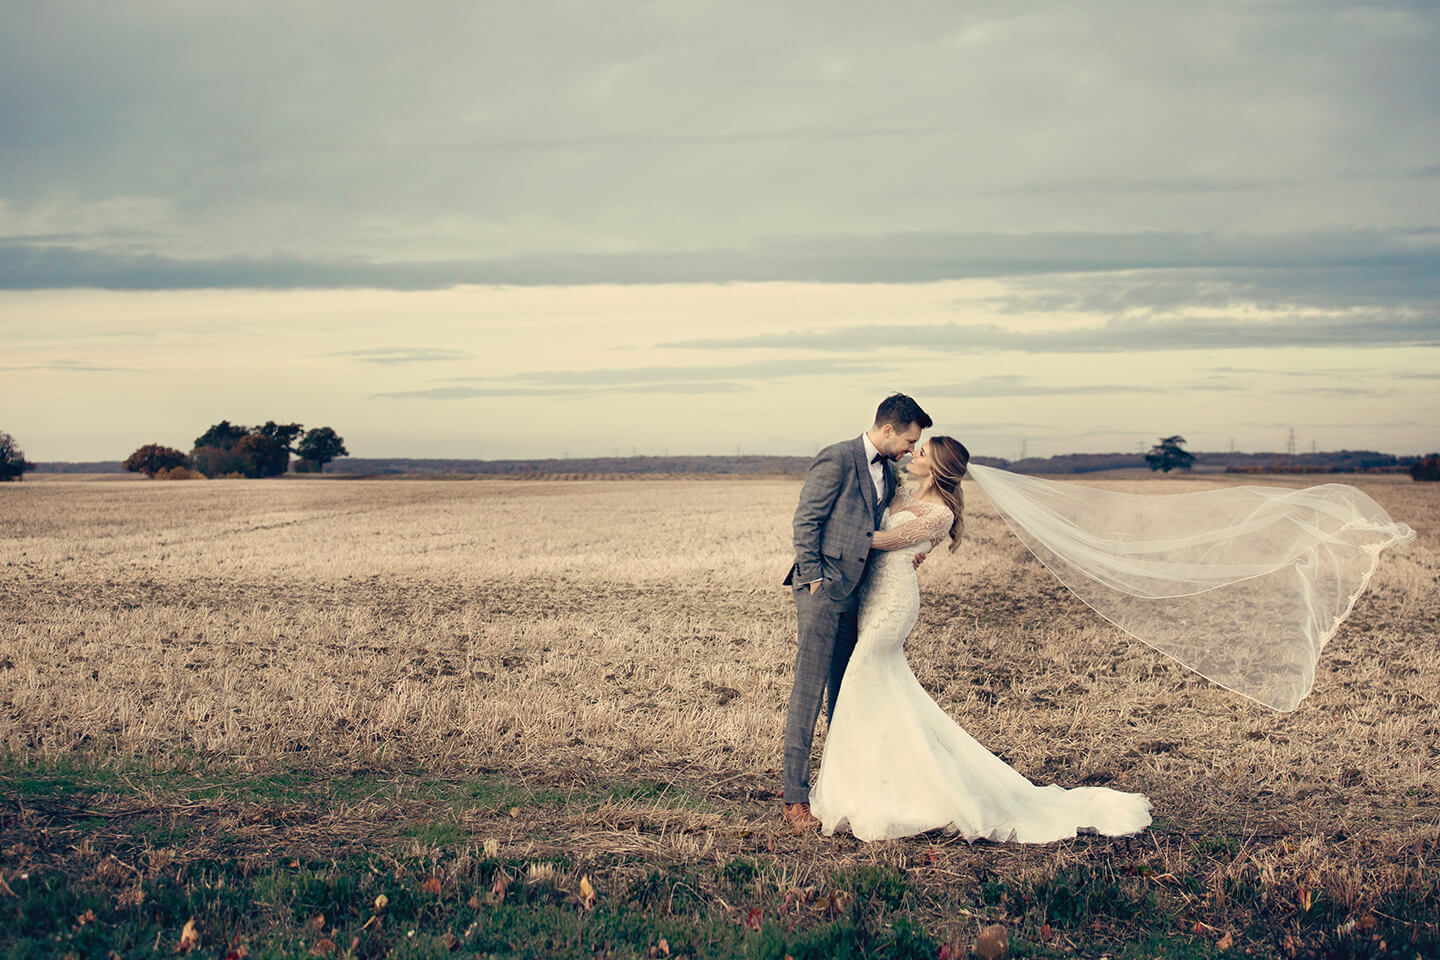 The bride and groom steal a moment in the countryside surrounding of this stunning Cambridgeshire wedding venue